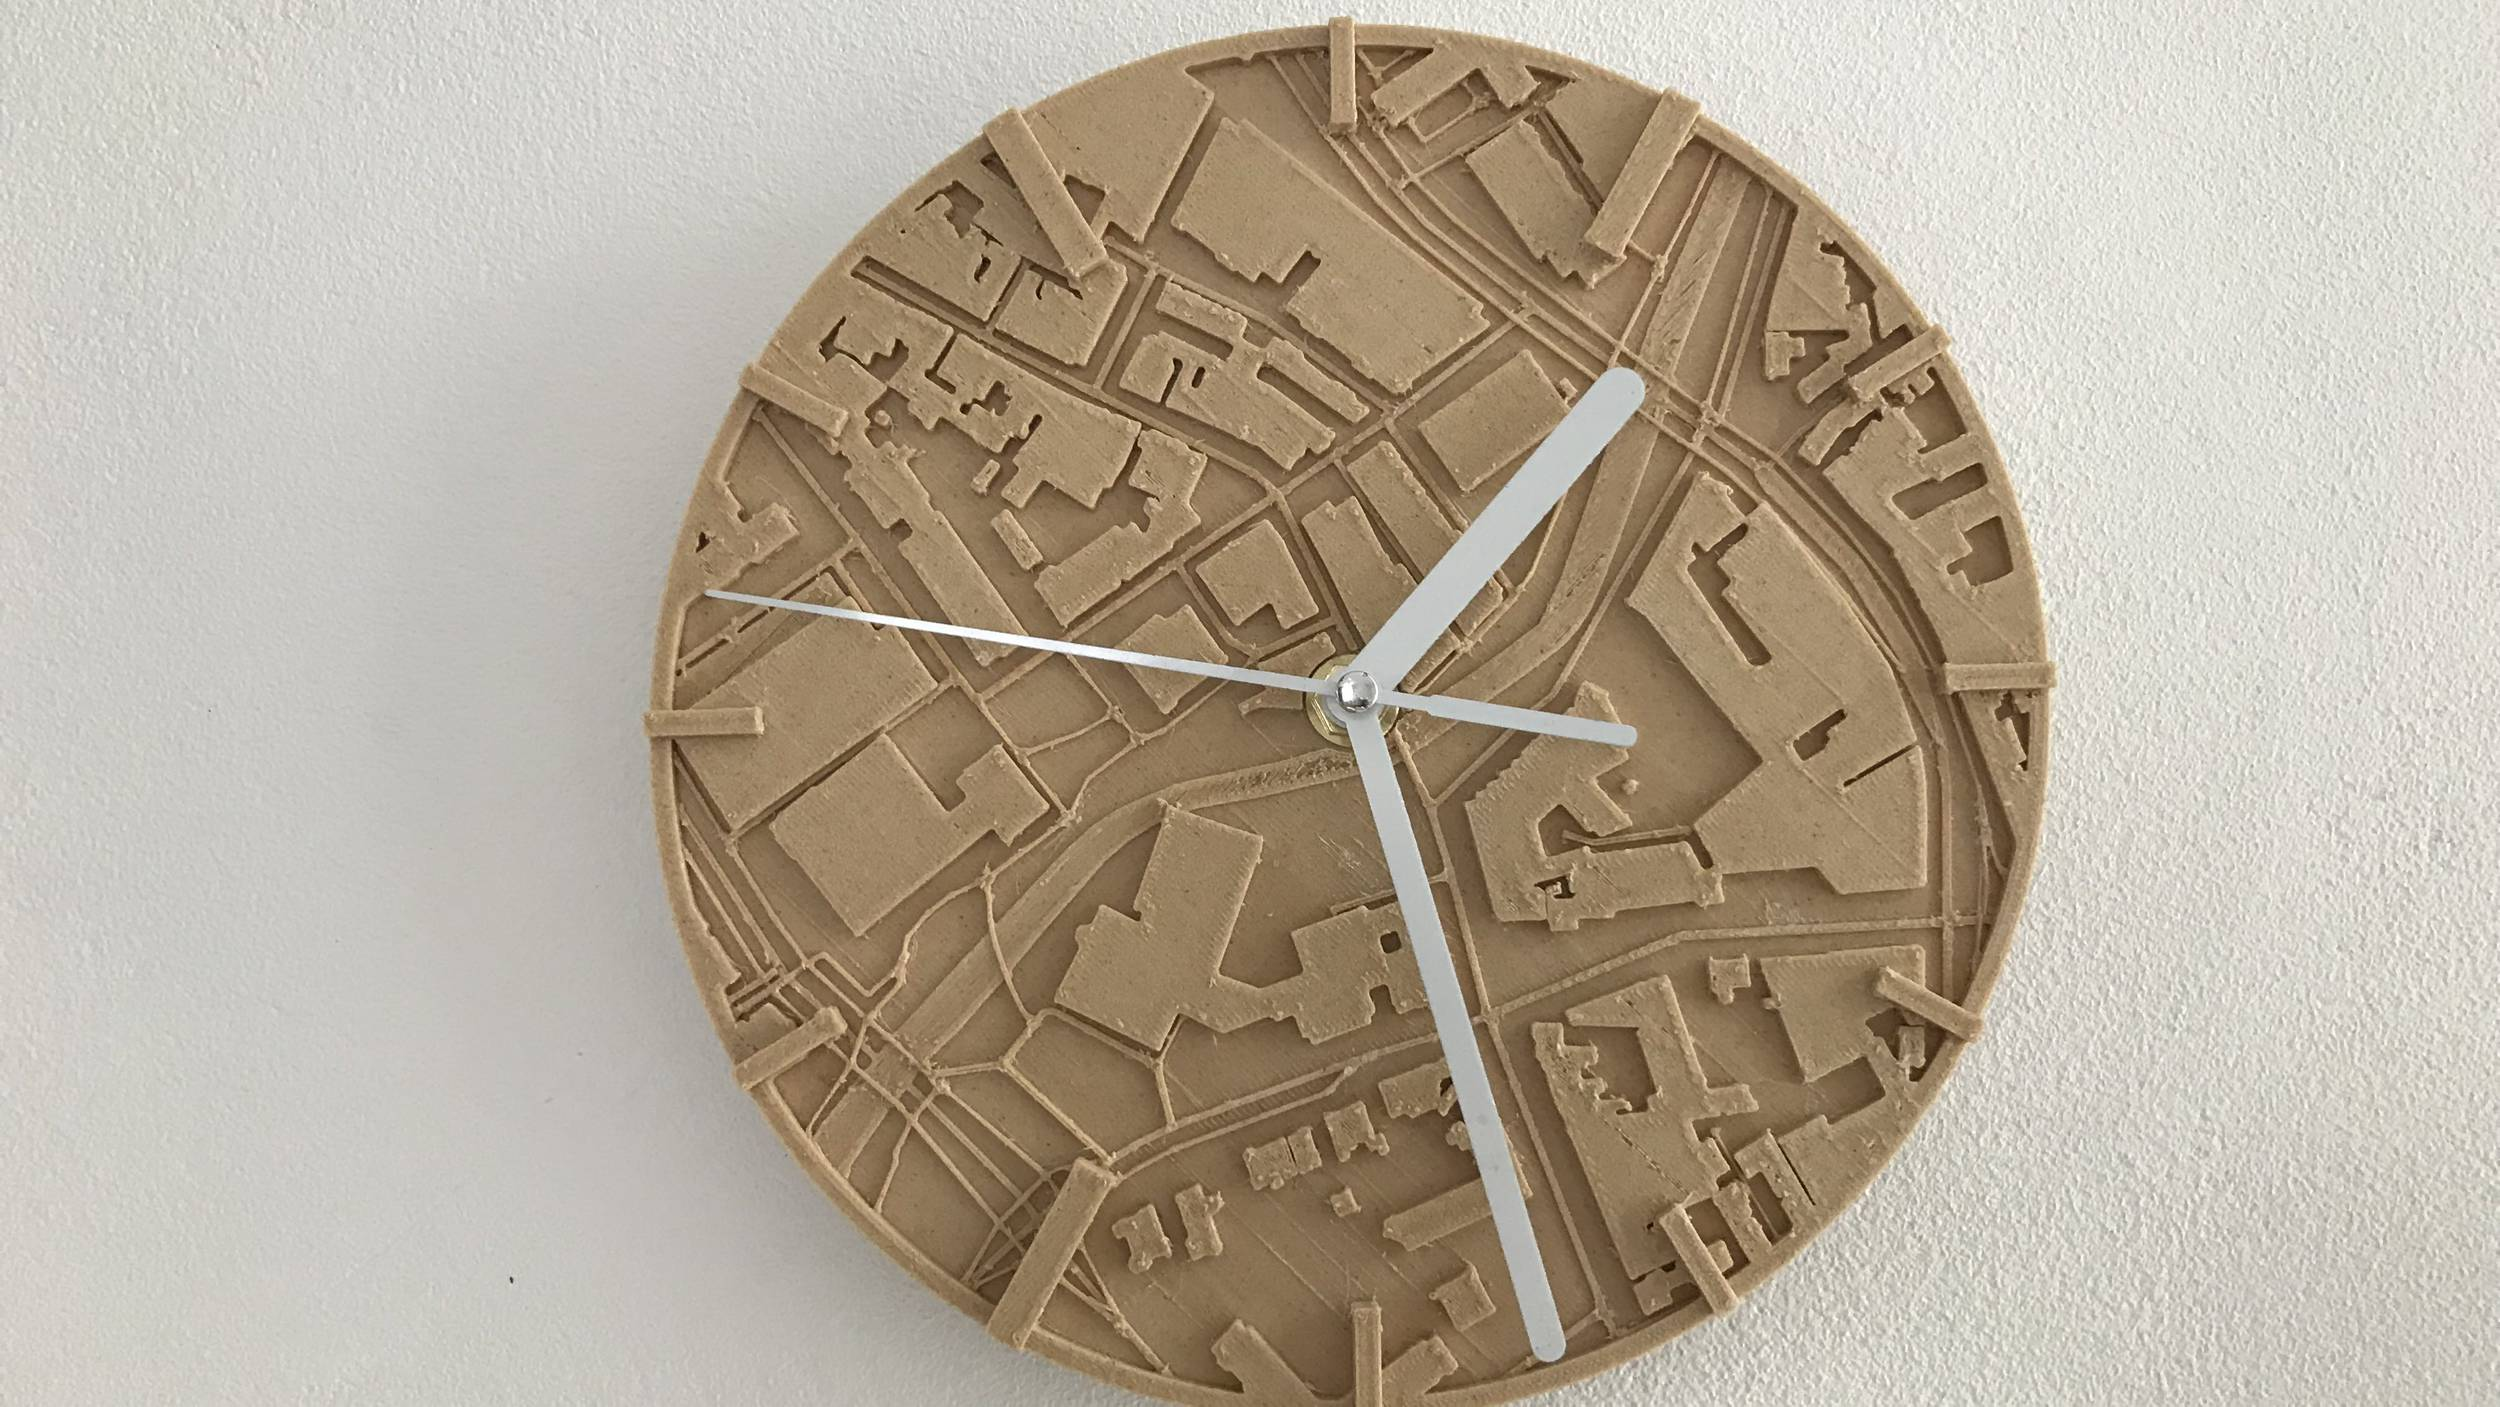 [Project] Make a Customized Map Clock to Celebrate Timeless Memories | All3DP